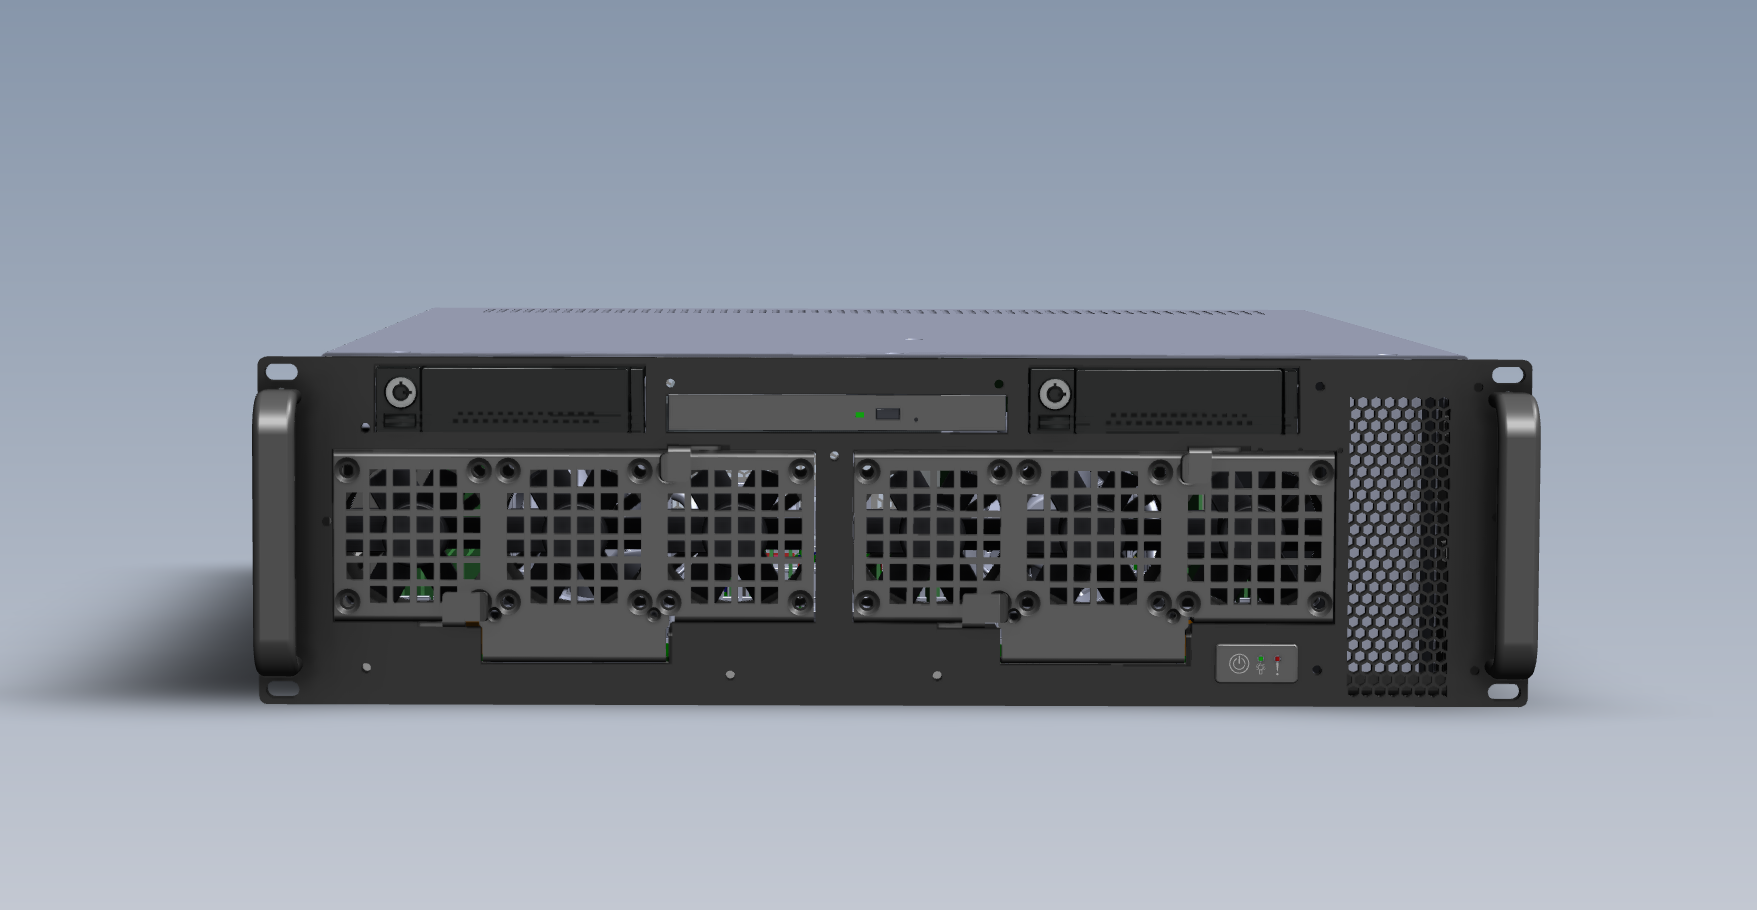 PRESS RELEASE: Step into the future with Trenton Systems' next-gen dual Xeon® 3U BAM Server